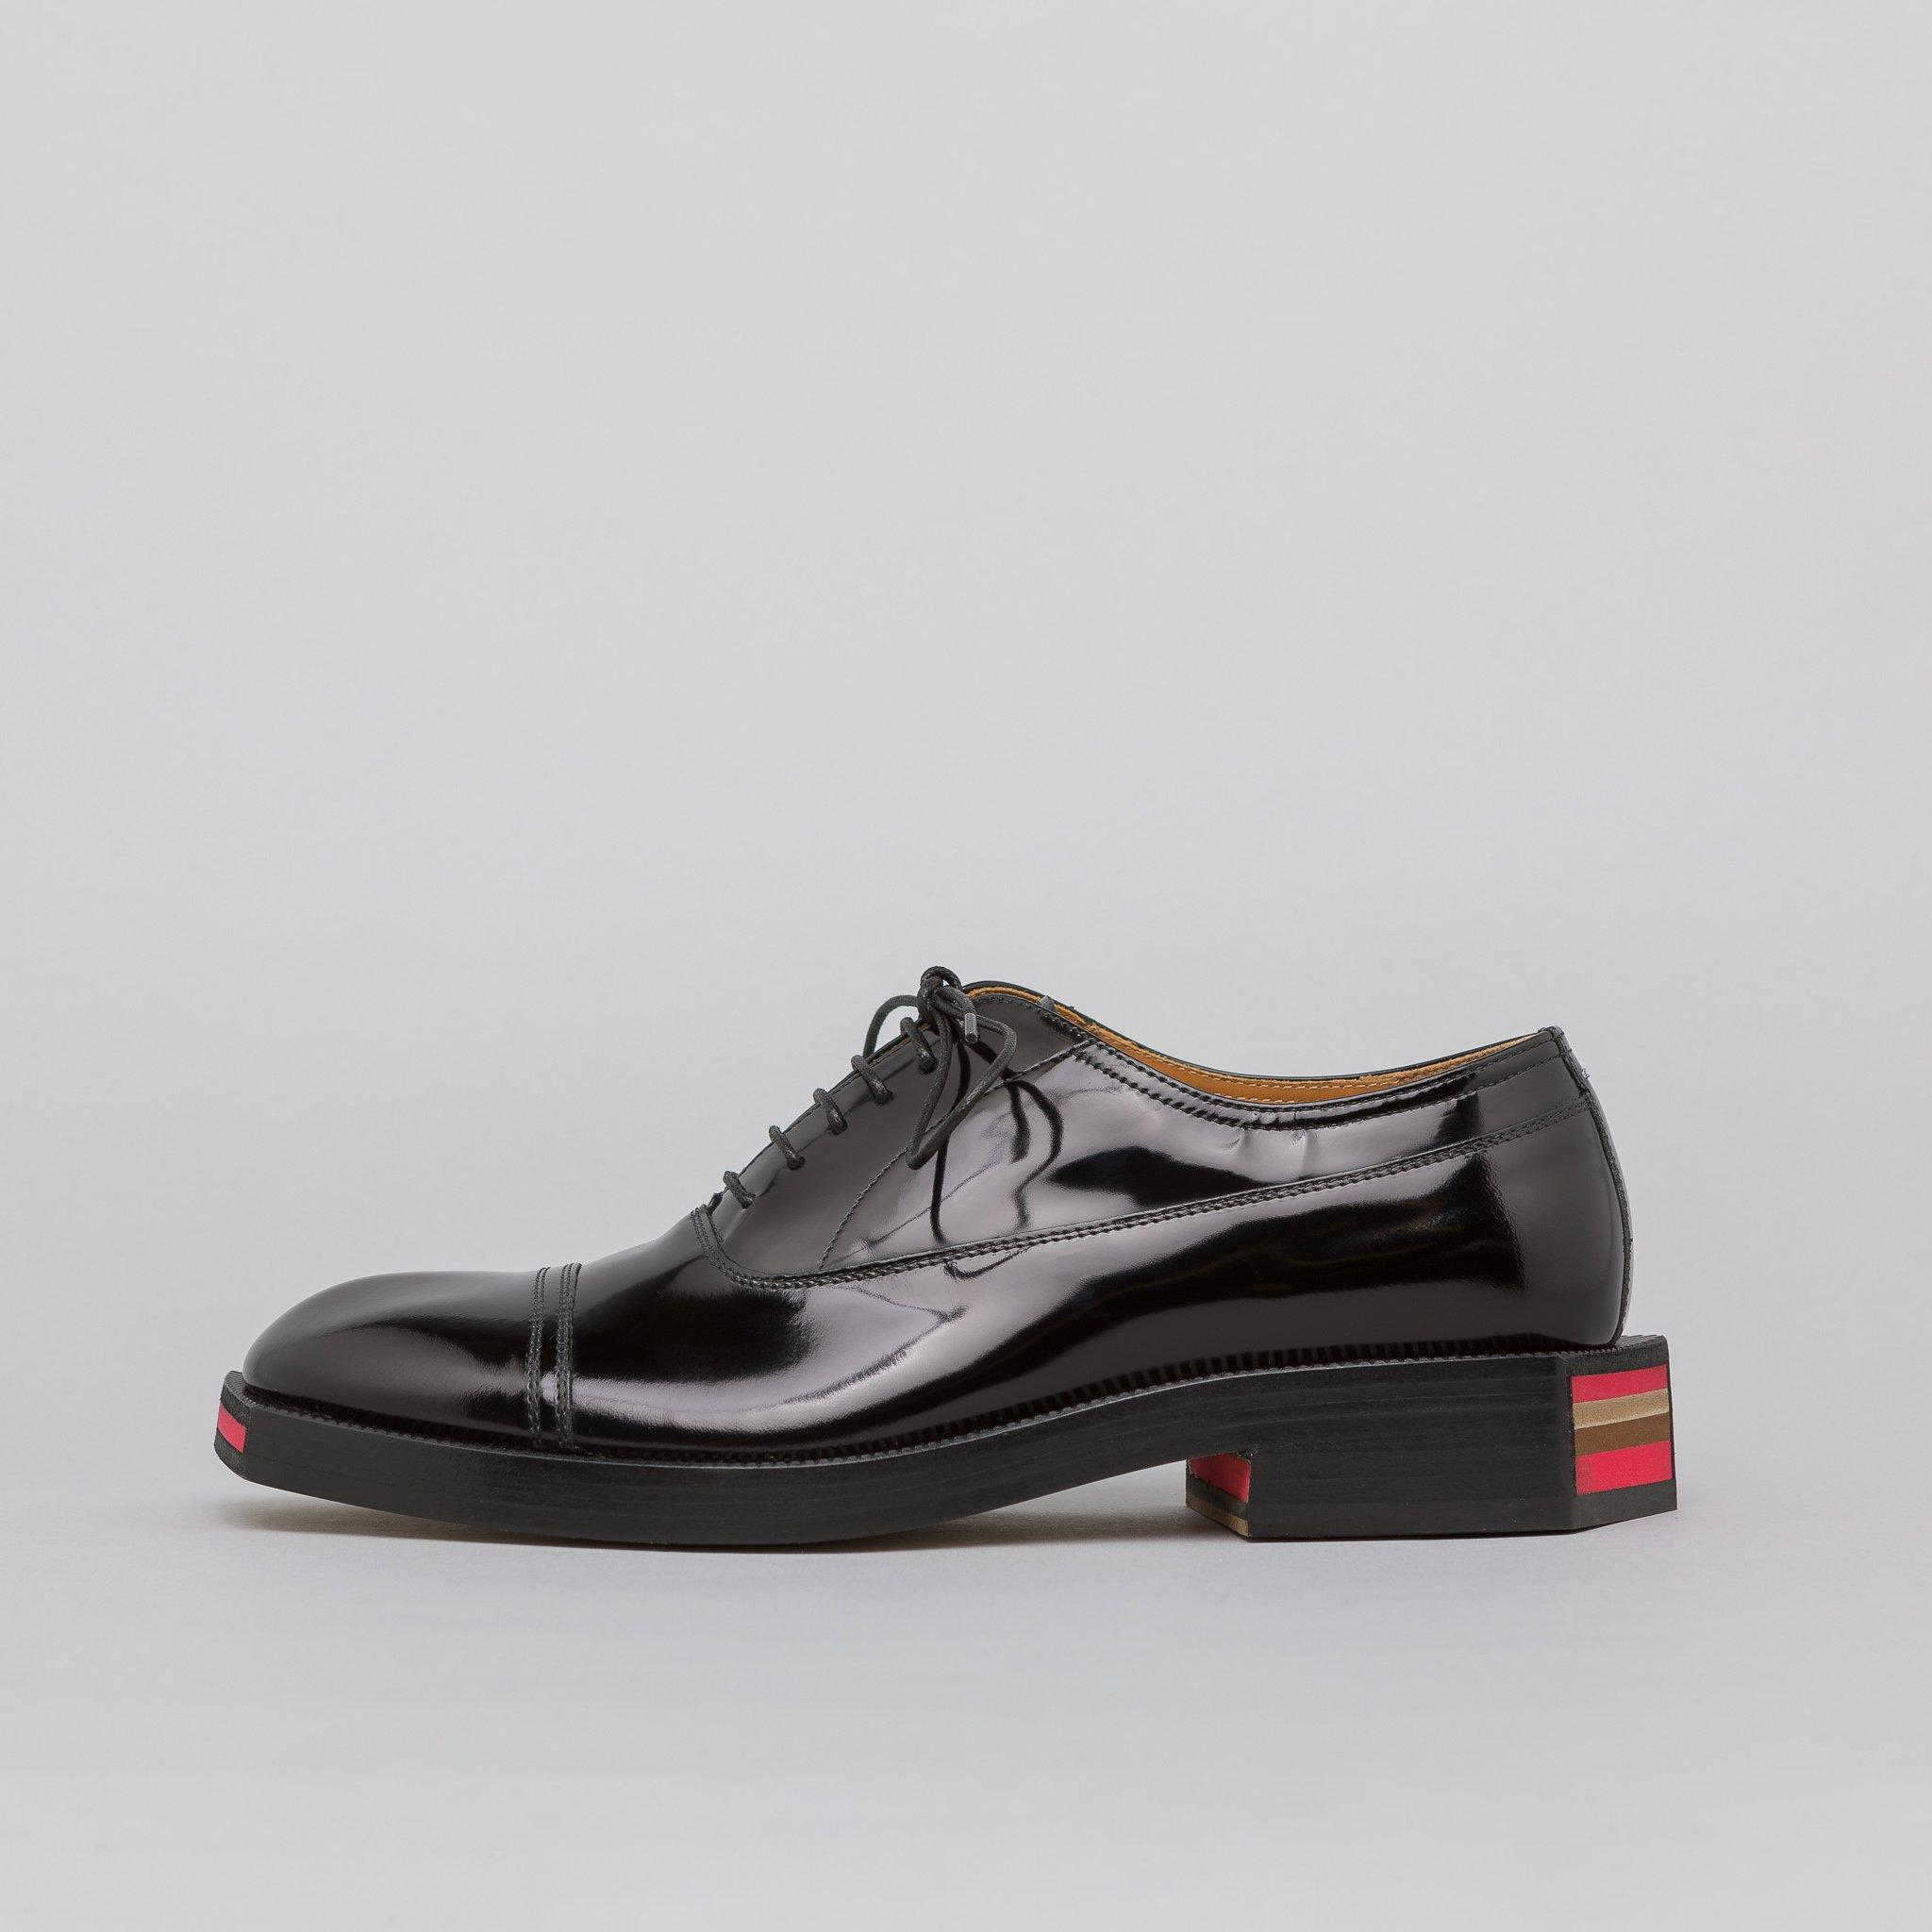 4177f399a00 Lyst - Maison Margiela Patent Leather Derby Shoe In Black in Black ...